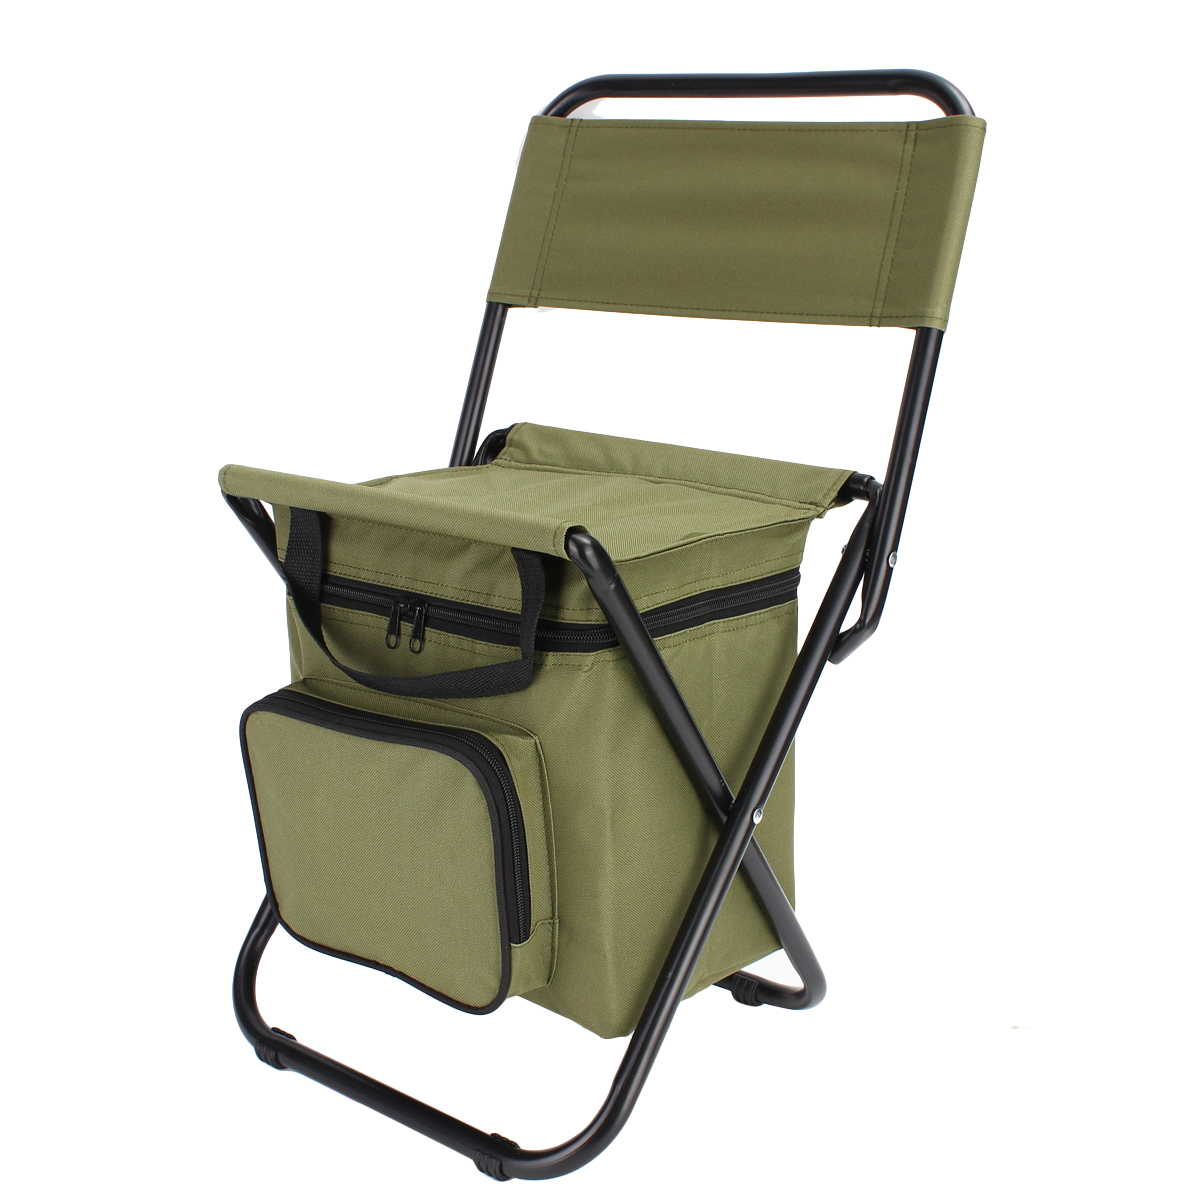 IPRee Outdoor Camping Folding Beach Chair Picnic BBQ St